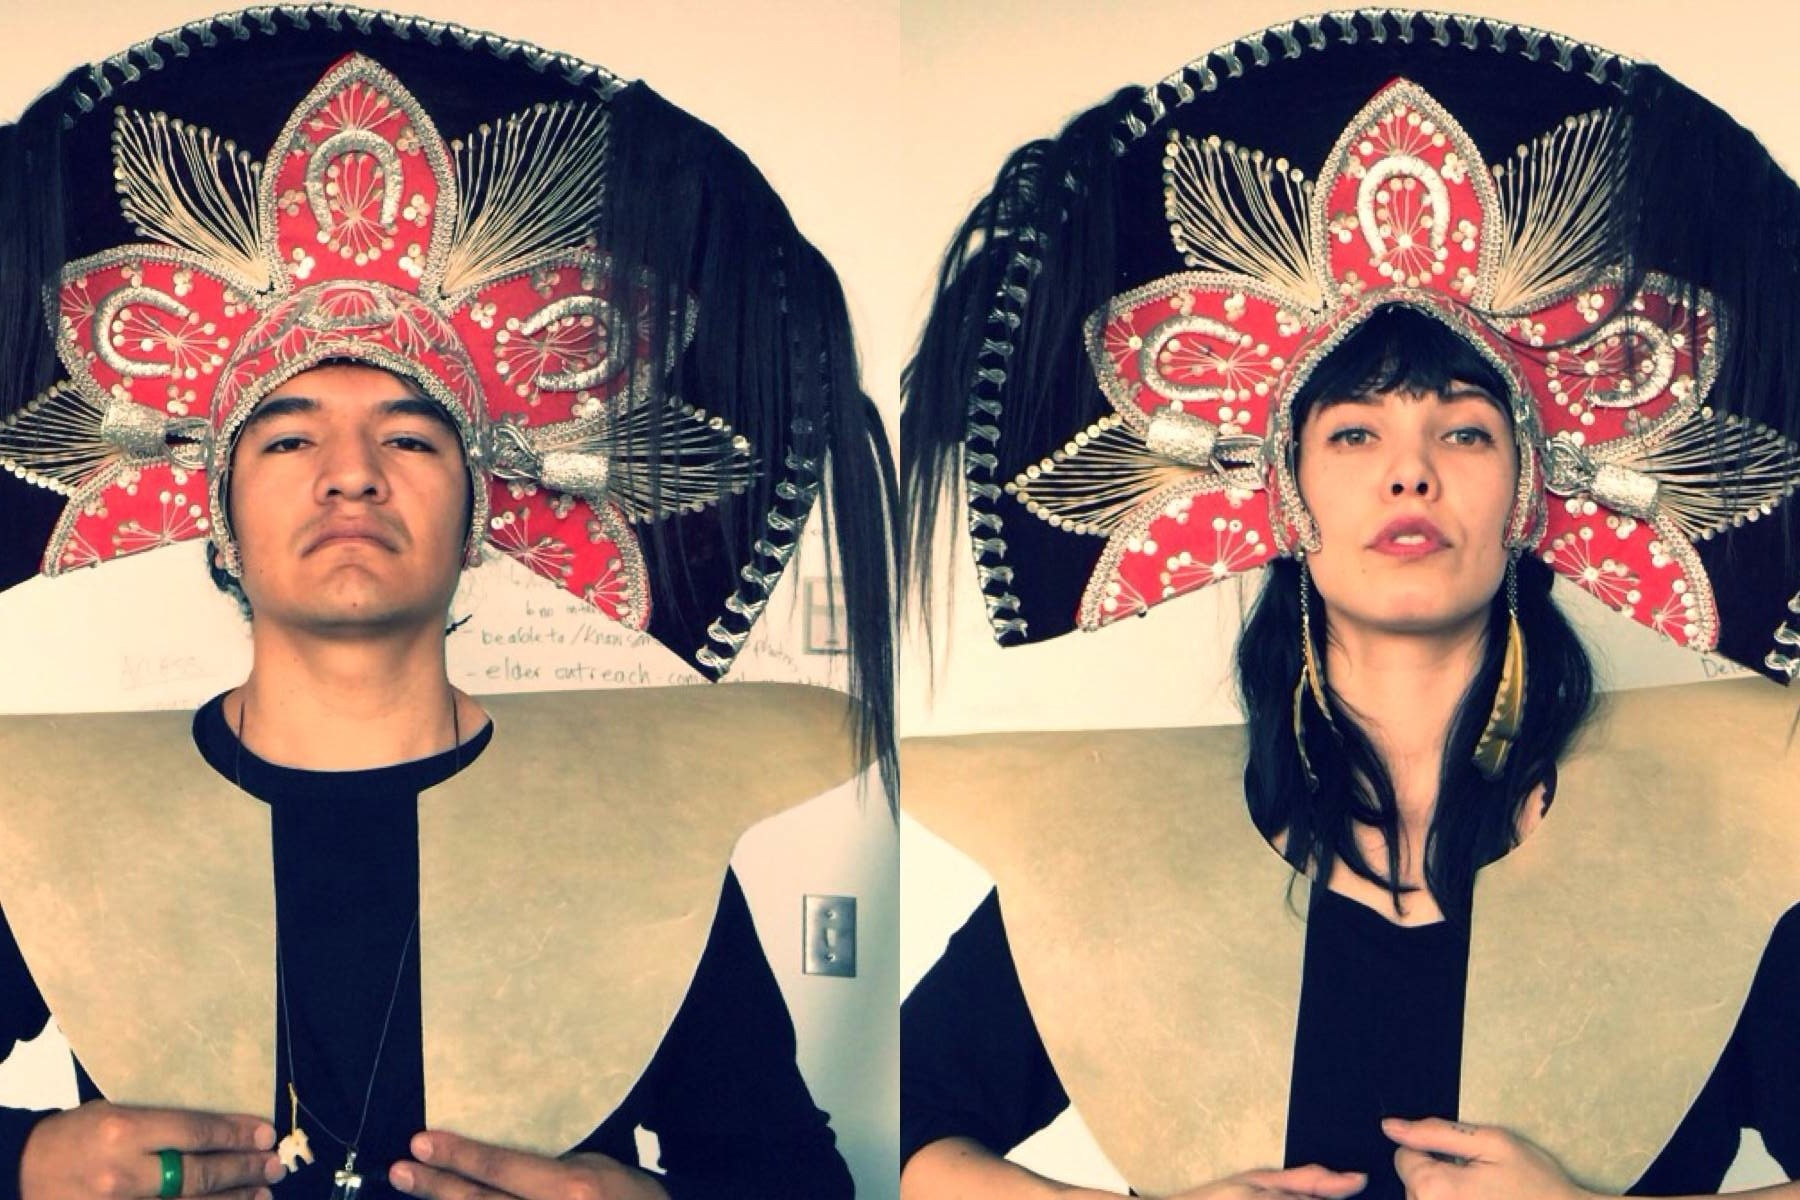 INDIAN GIVER setsuné indigenous fashion incubator